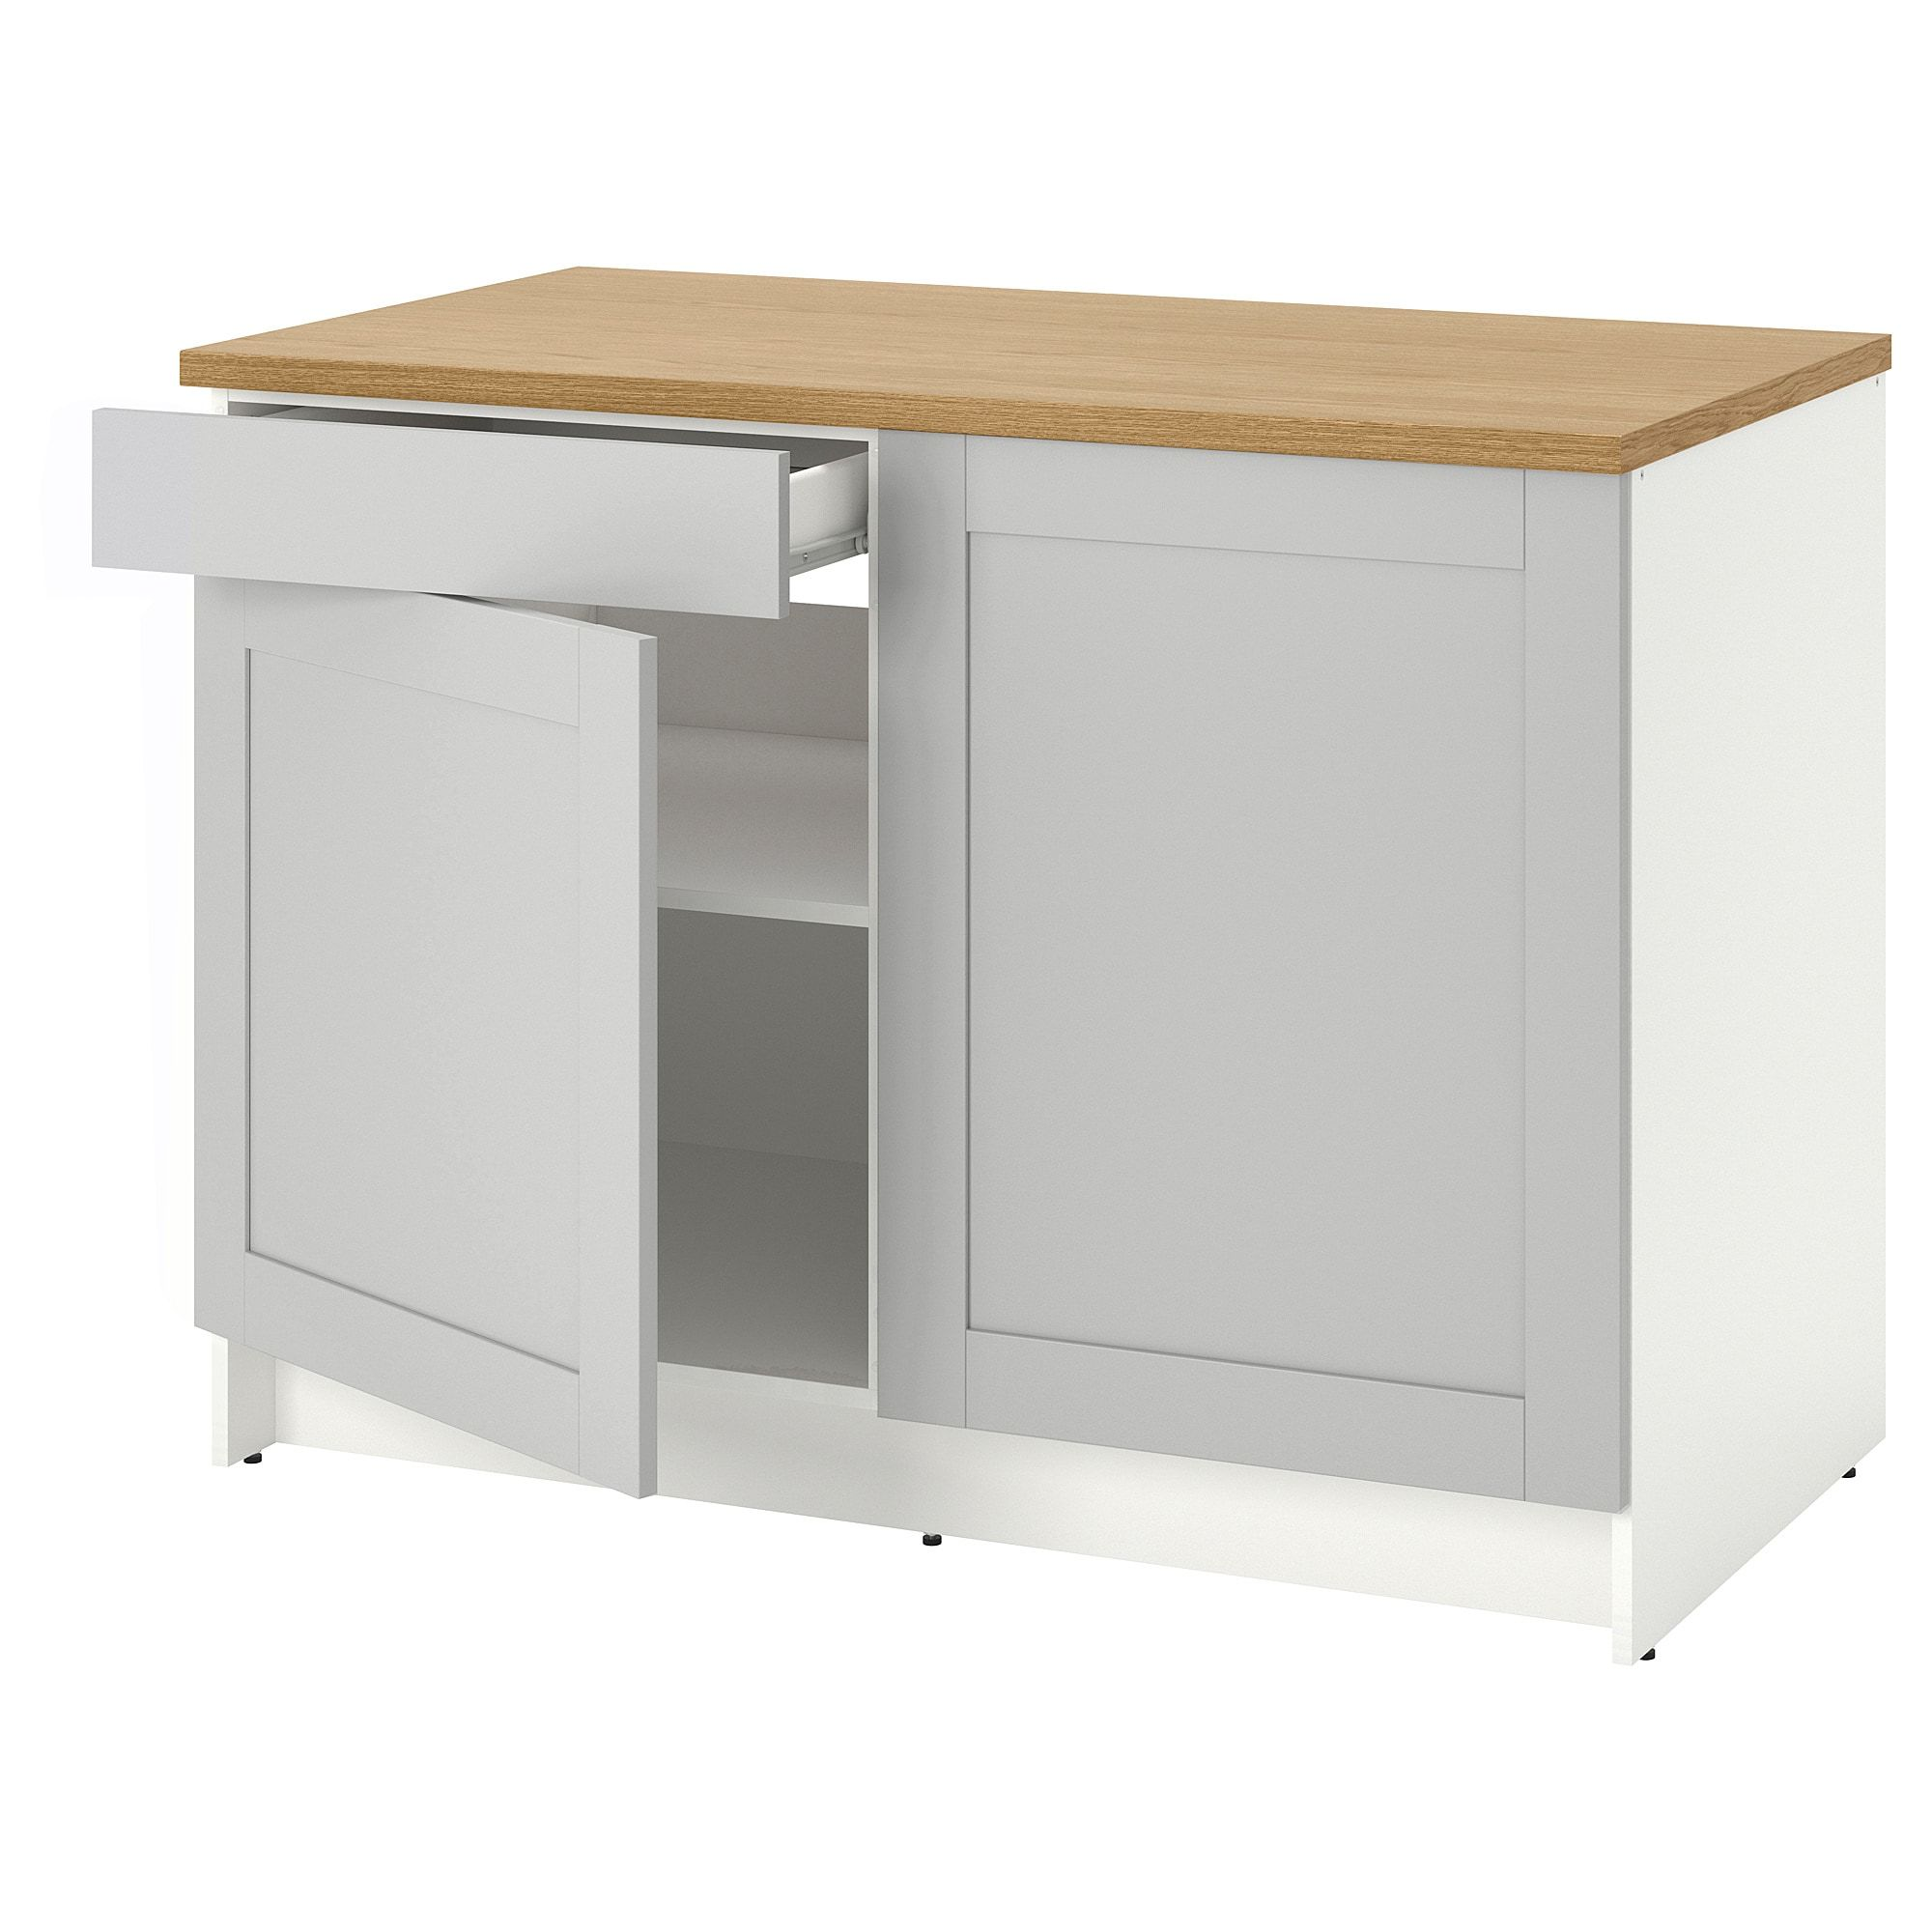 Ikea Knoxhult Gray Base Cabinet With Doors And Drawer In 2020 Freestanding Cooker Base Cabinets Kitchen Modular